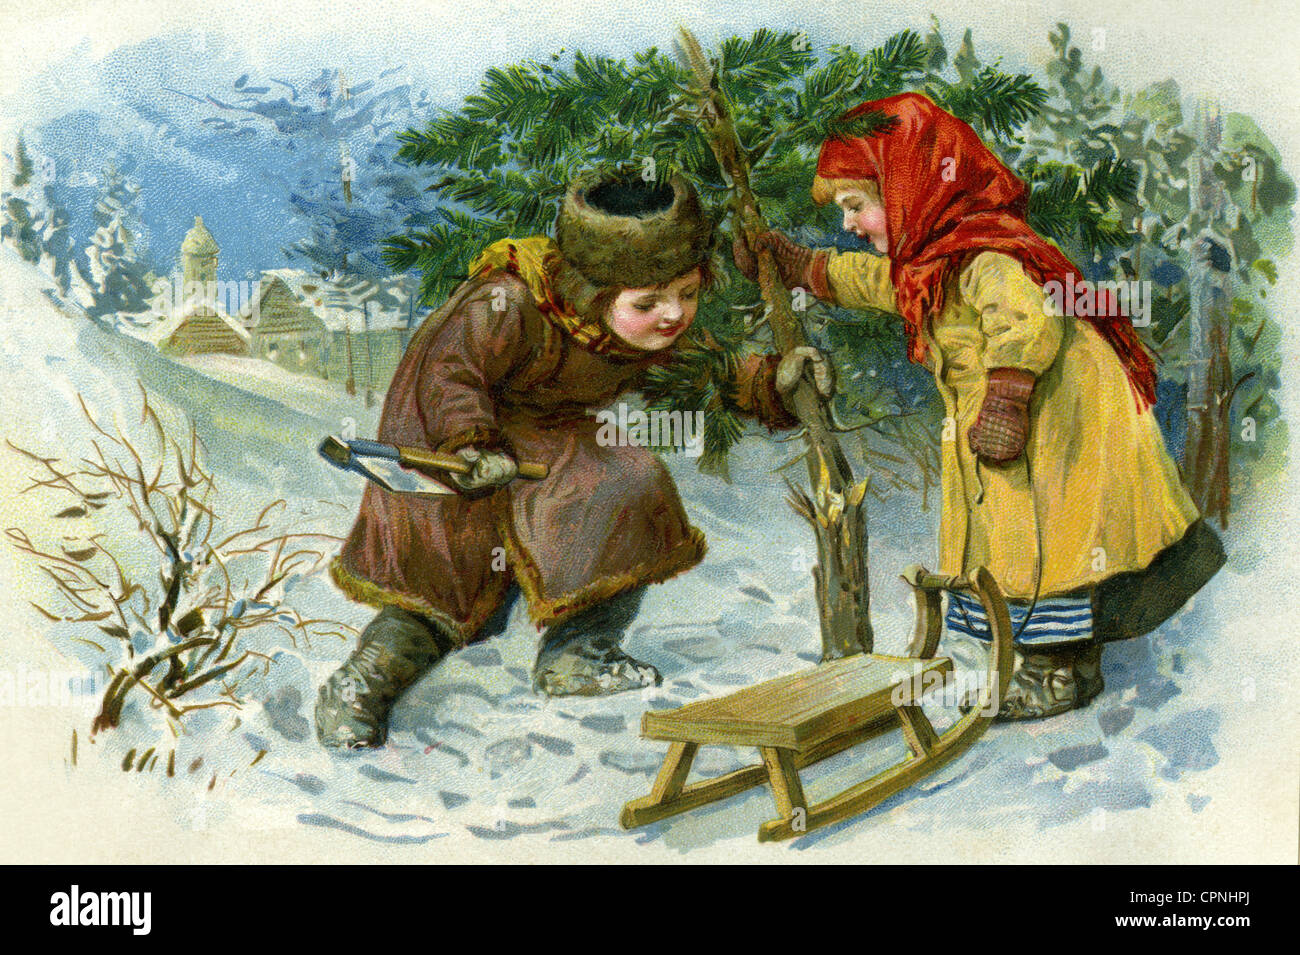 Christmas, Christmas tree, children cutting Christmas tree, scrap picture, lithograph, Germany, circa 1890, Additional - Stock Image